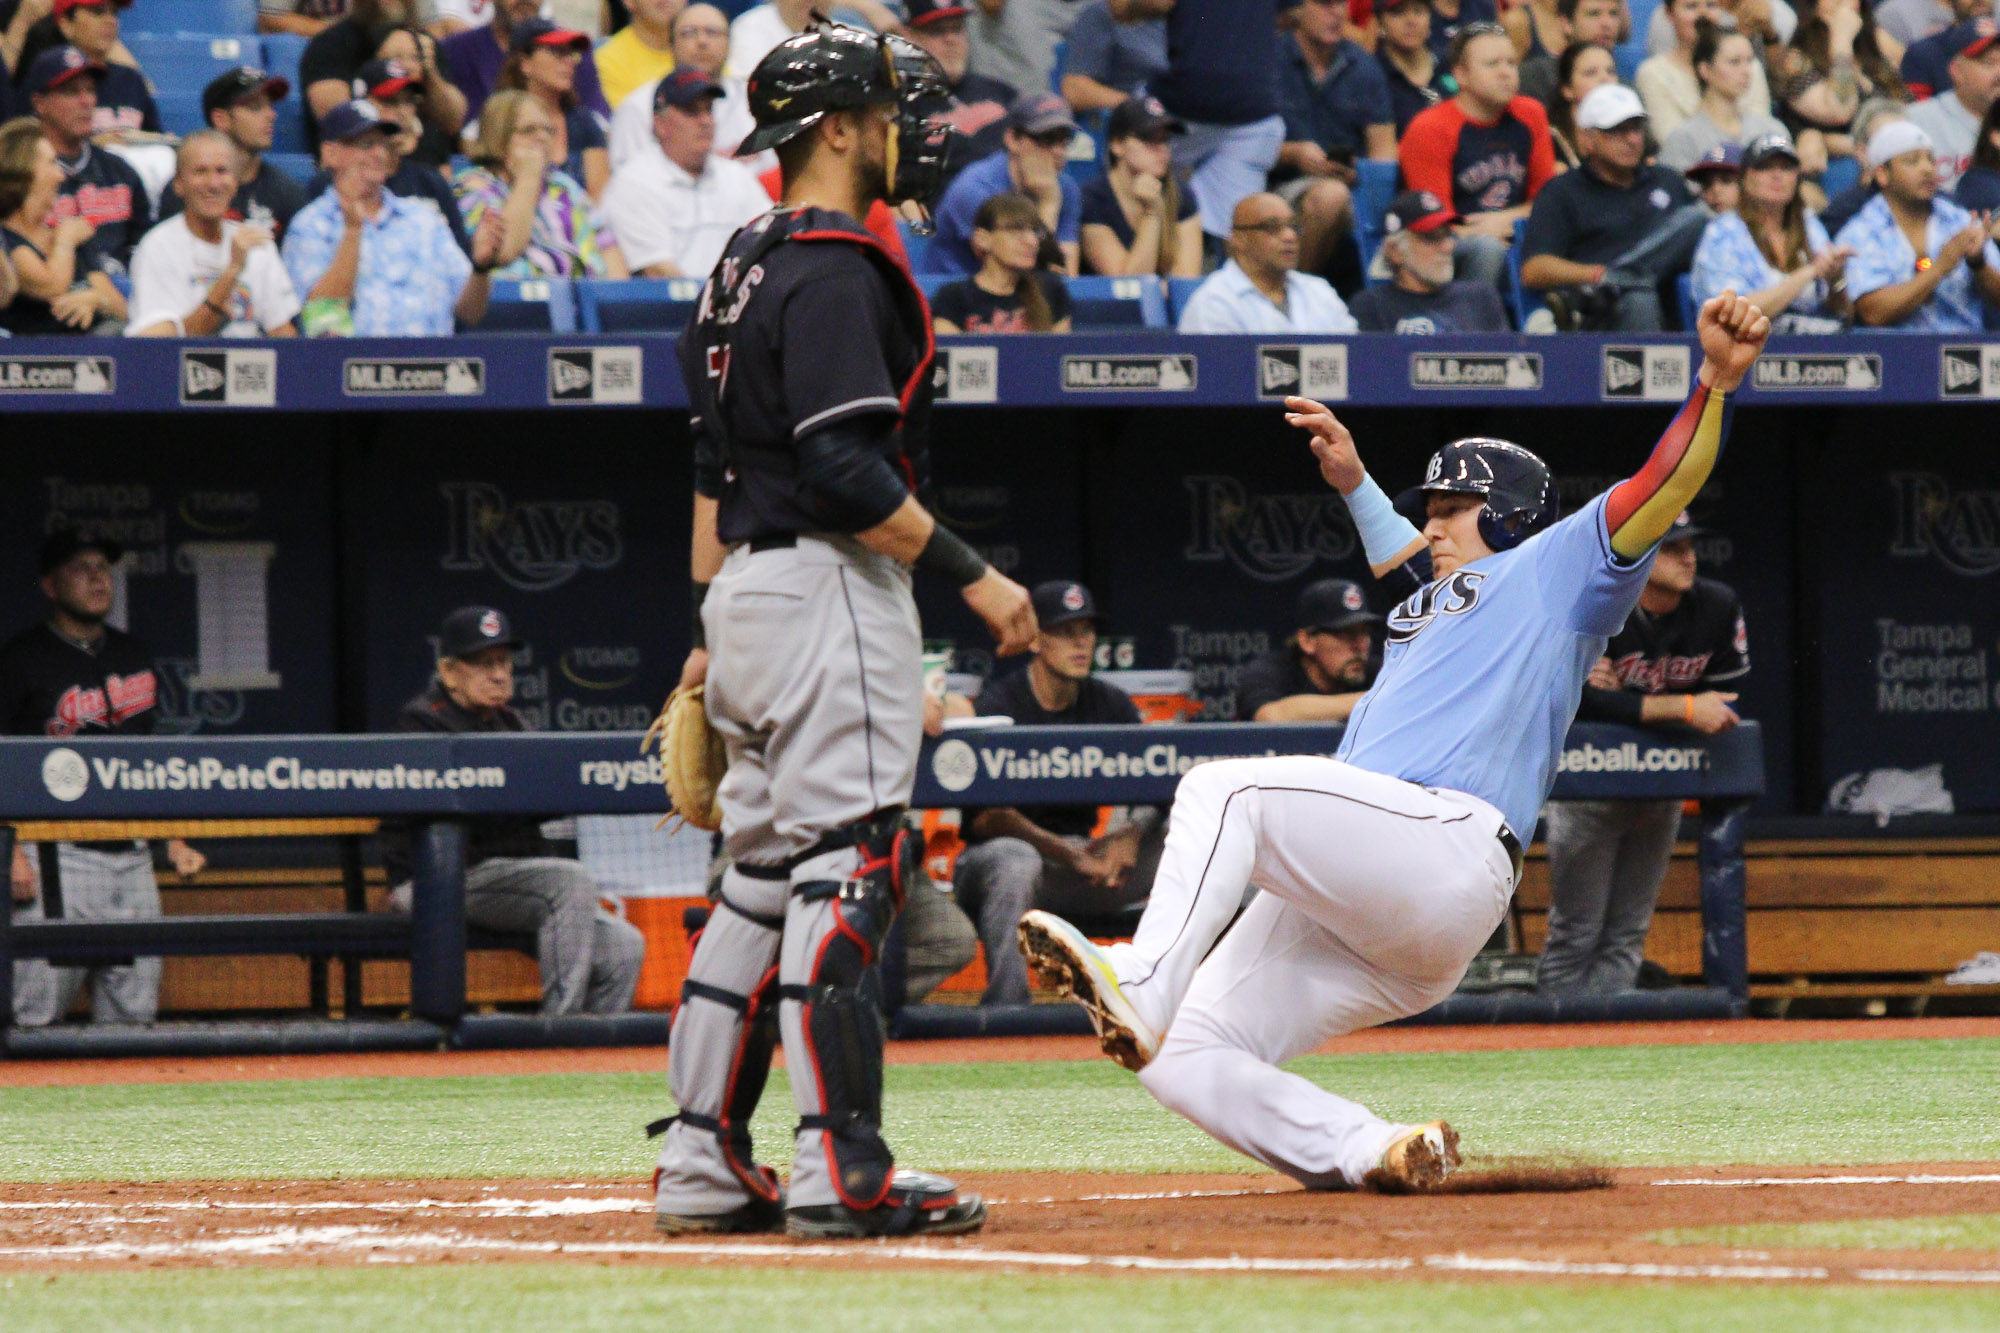 Sucre scores for the Rays in the third inning./ANDREW J. KRAMER